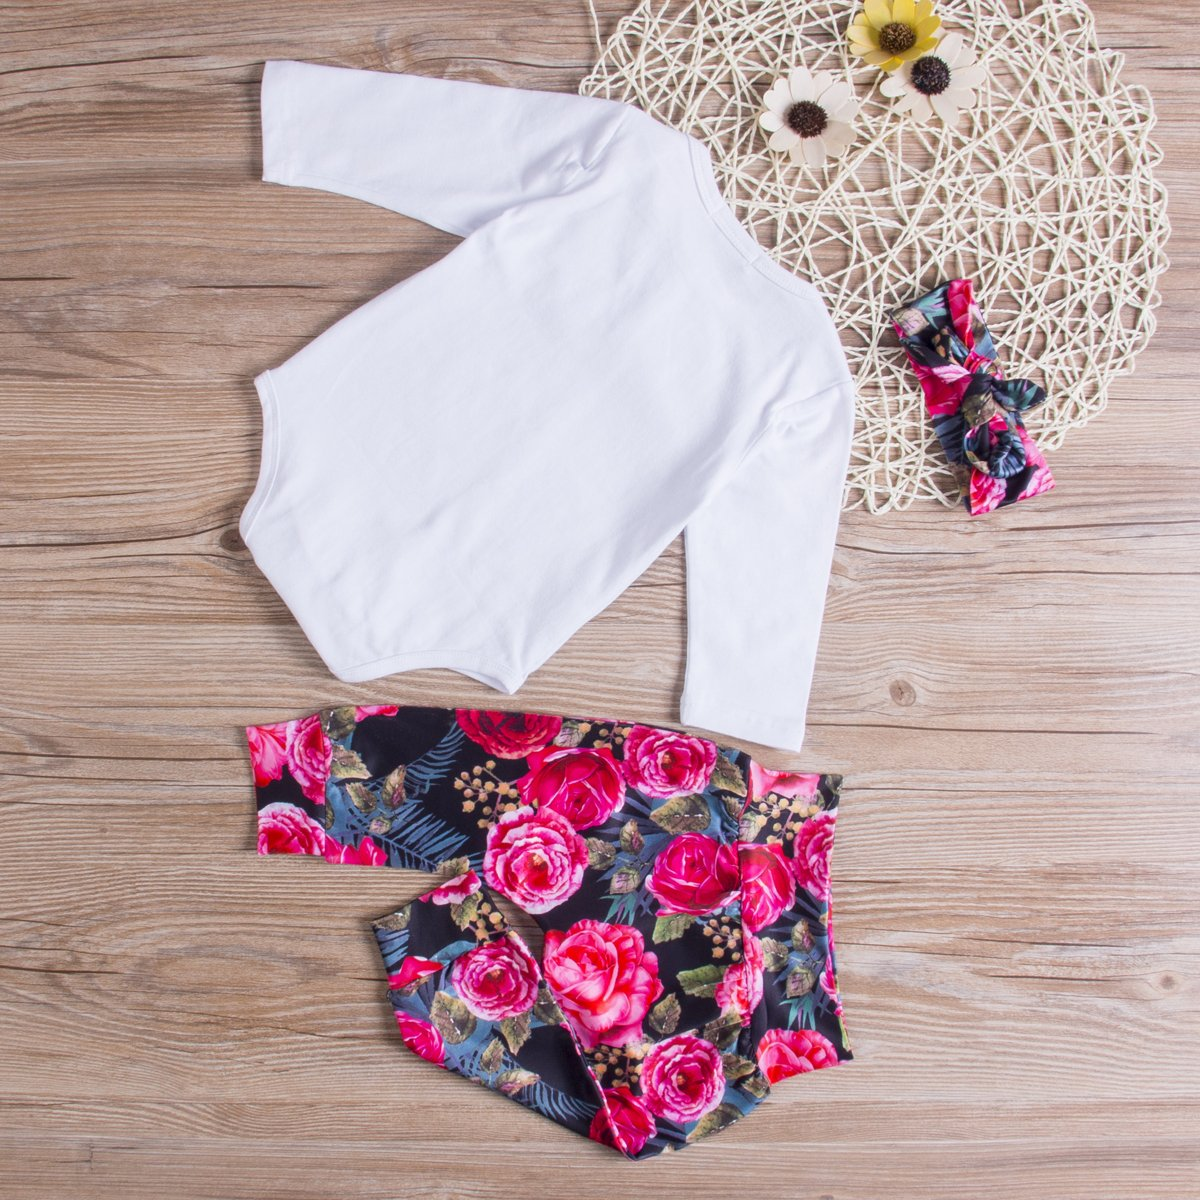 Baby Girls Little Sister Bodysuit Tops Floral Pants Bowknot Headband Outfits Set, White (0-6 Months) by Ma&Baby (Image #6)